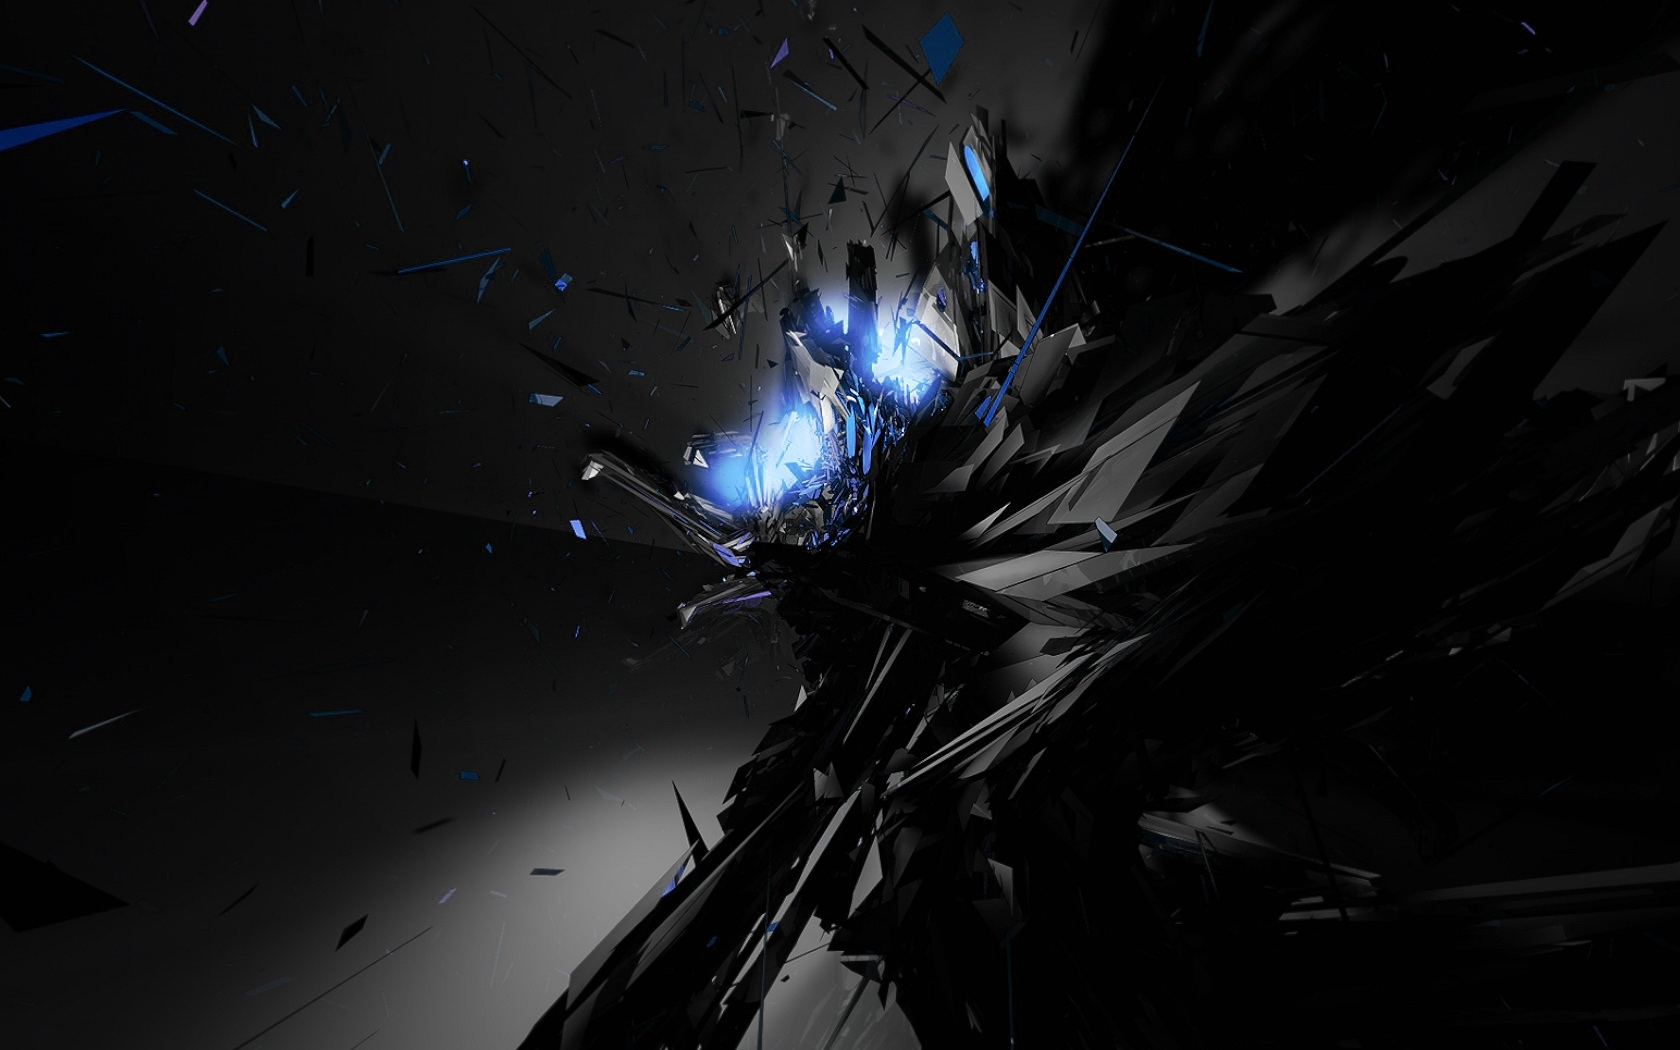 114 dark hd wallpapers | background images - wallpaper abyss